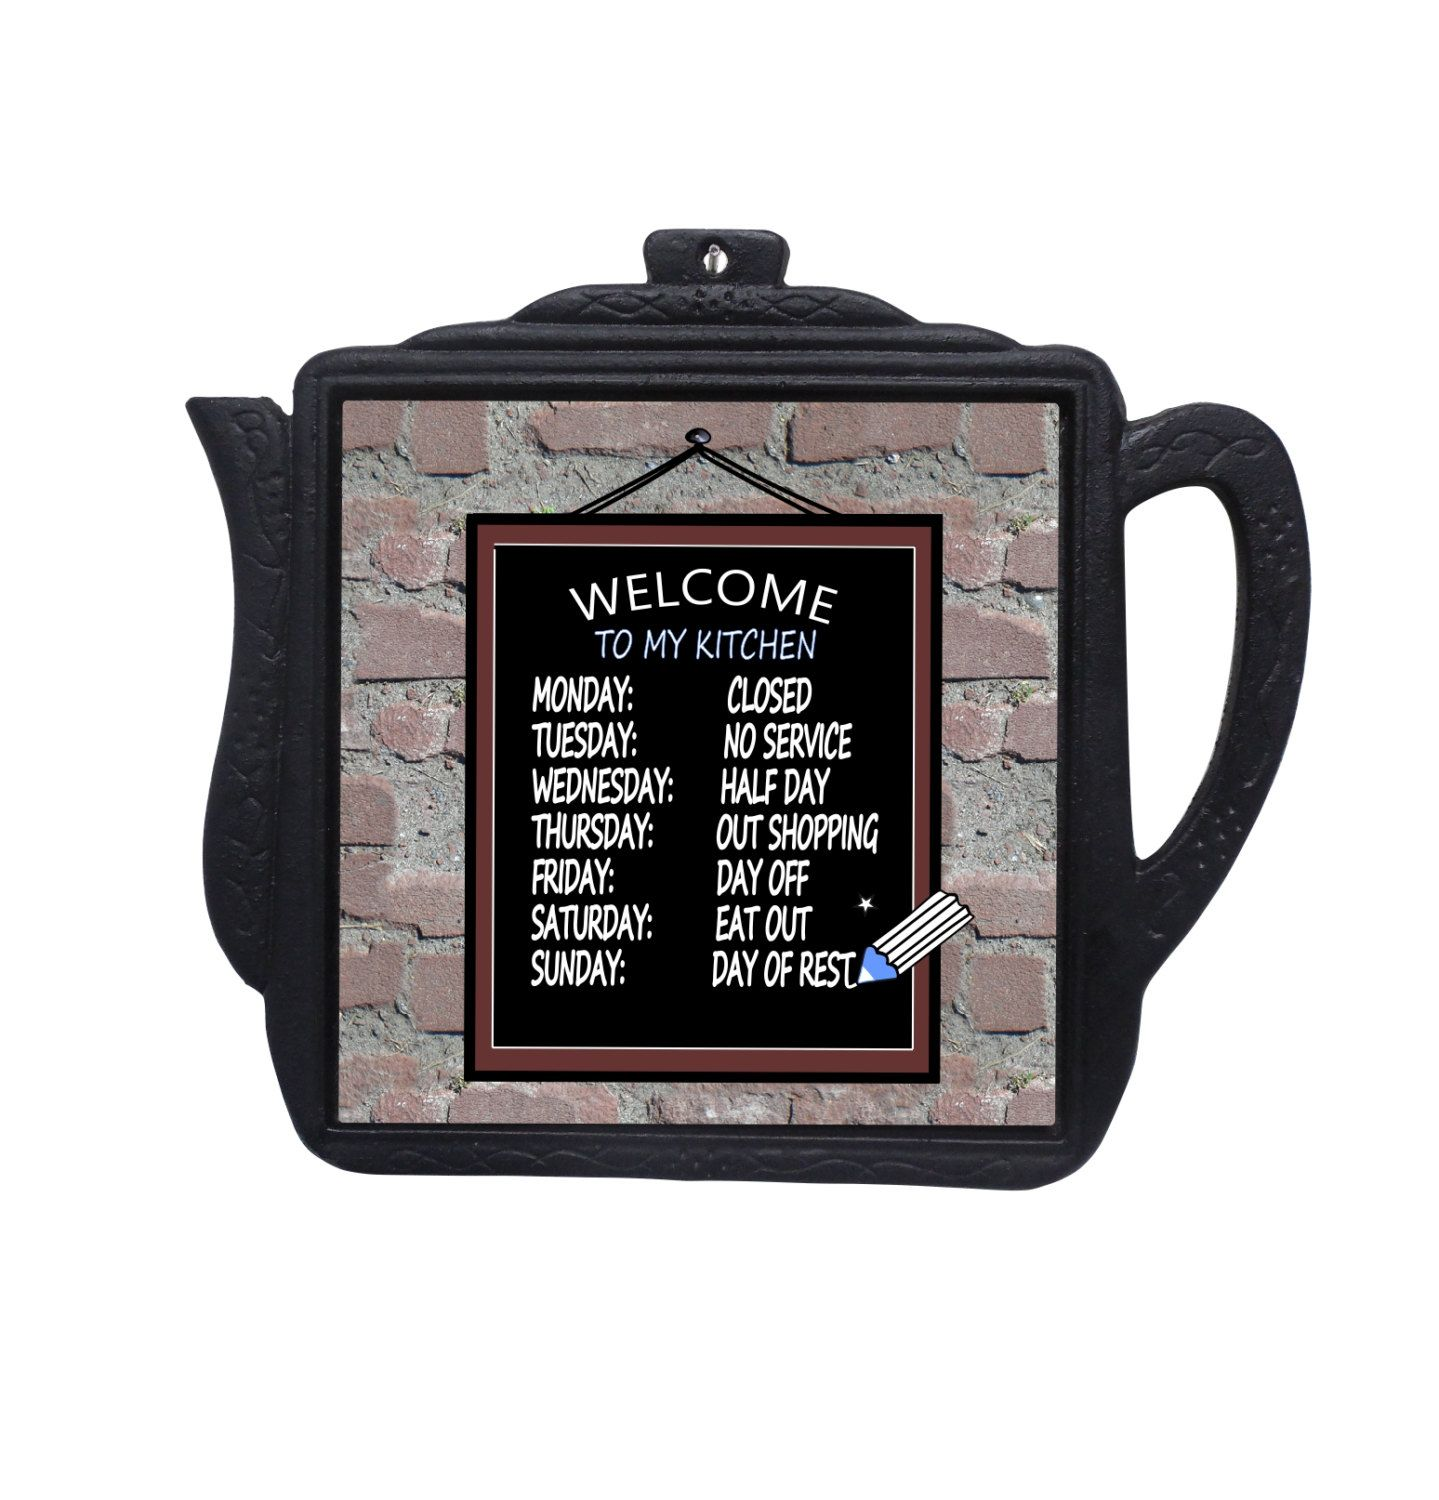 Welcome To My Kitchen Sign, Kitchen Wall Decor, Wrought Iron Trivet, Funny  Kitchen